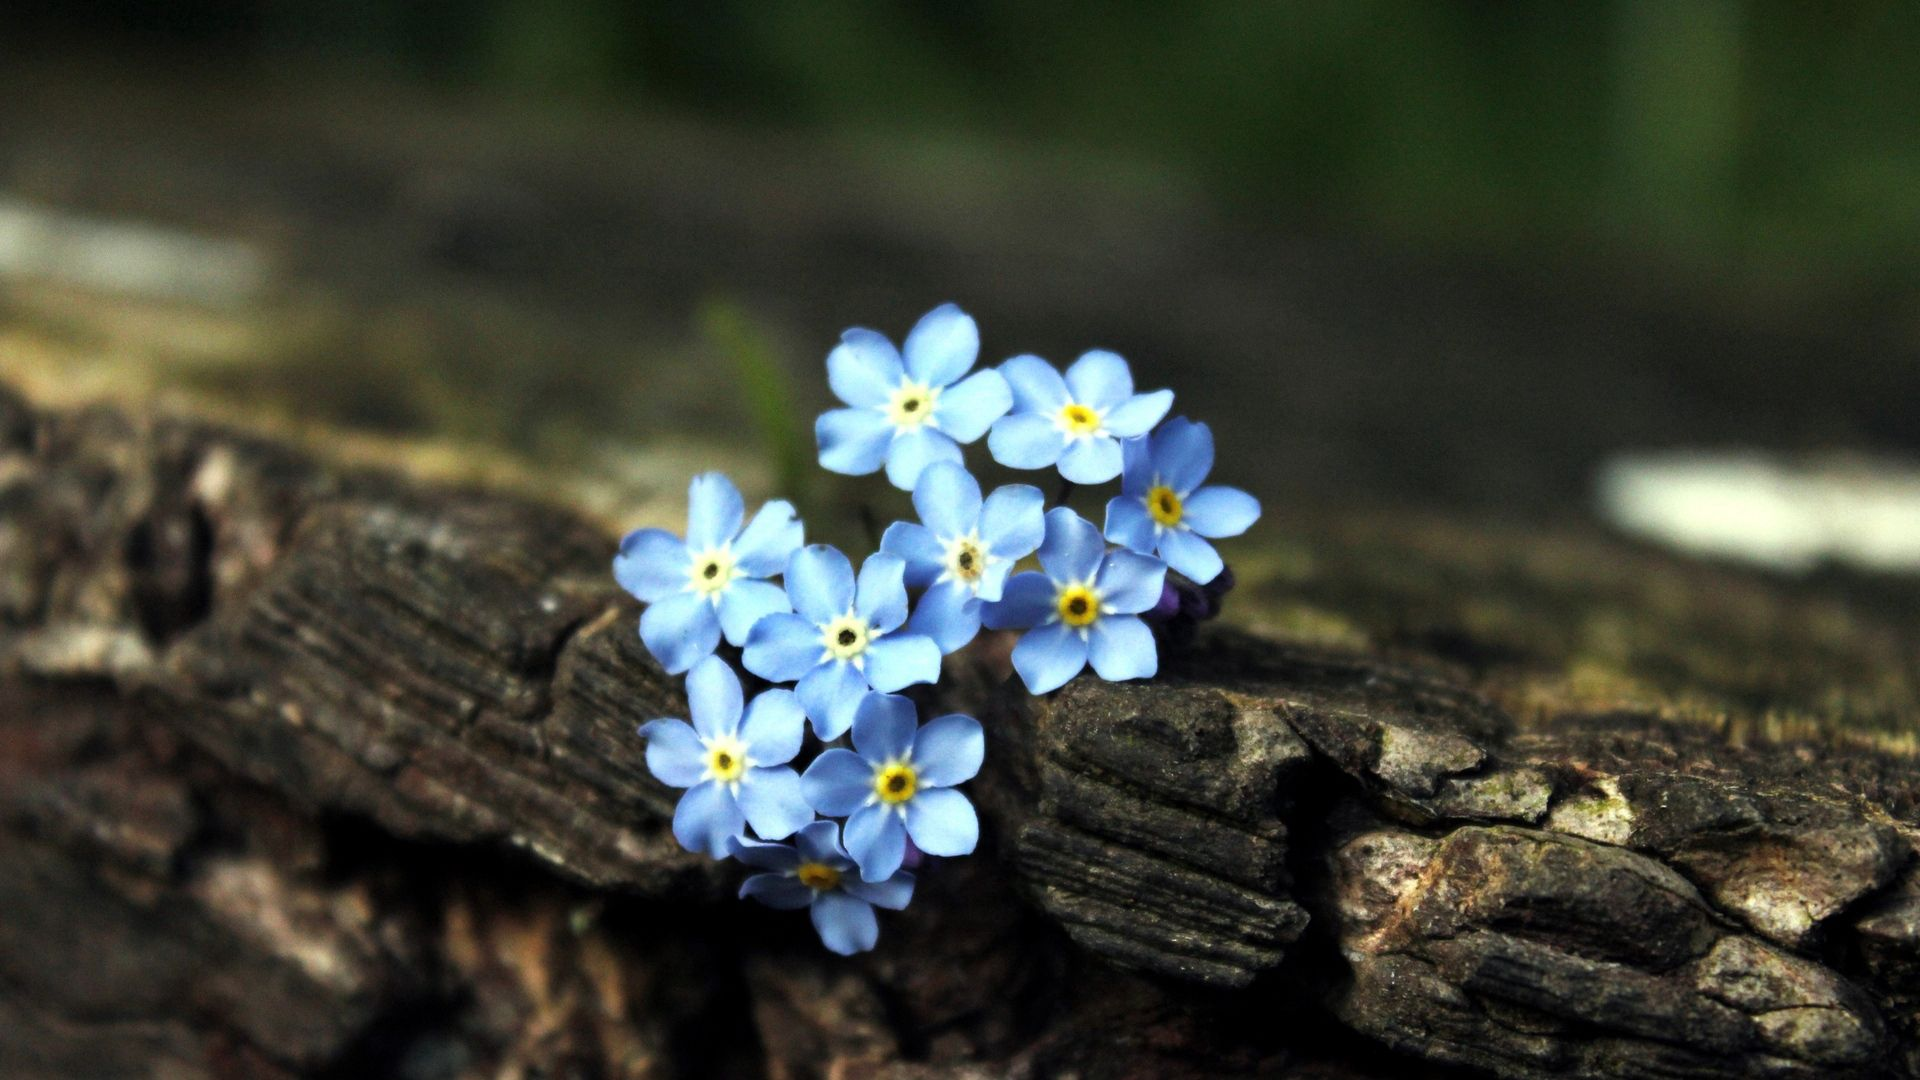 144948 free wallpaper 480x800 for phone, download images Flowers, Plant, Macro, Bark, Small 480x800 for mobile